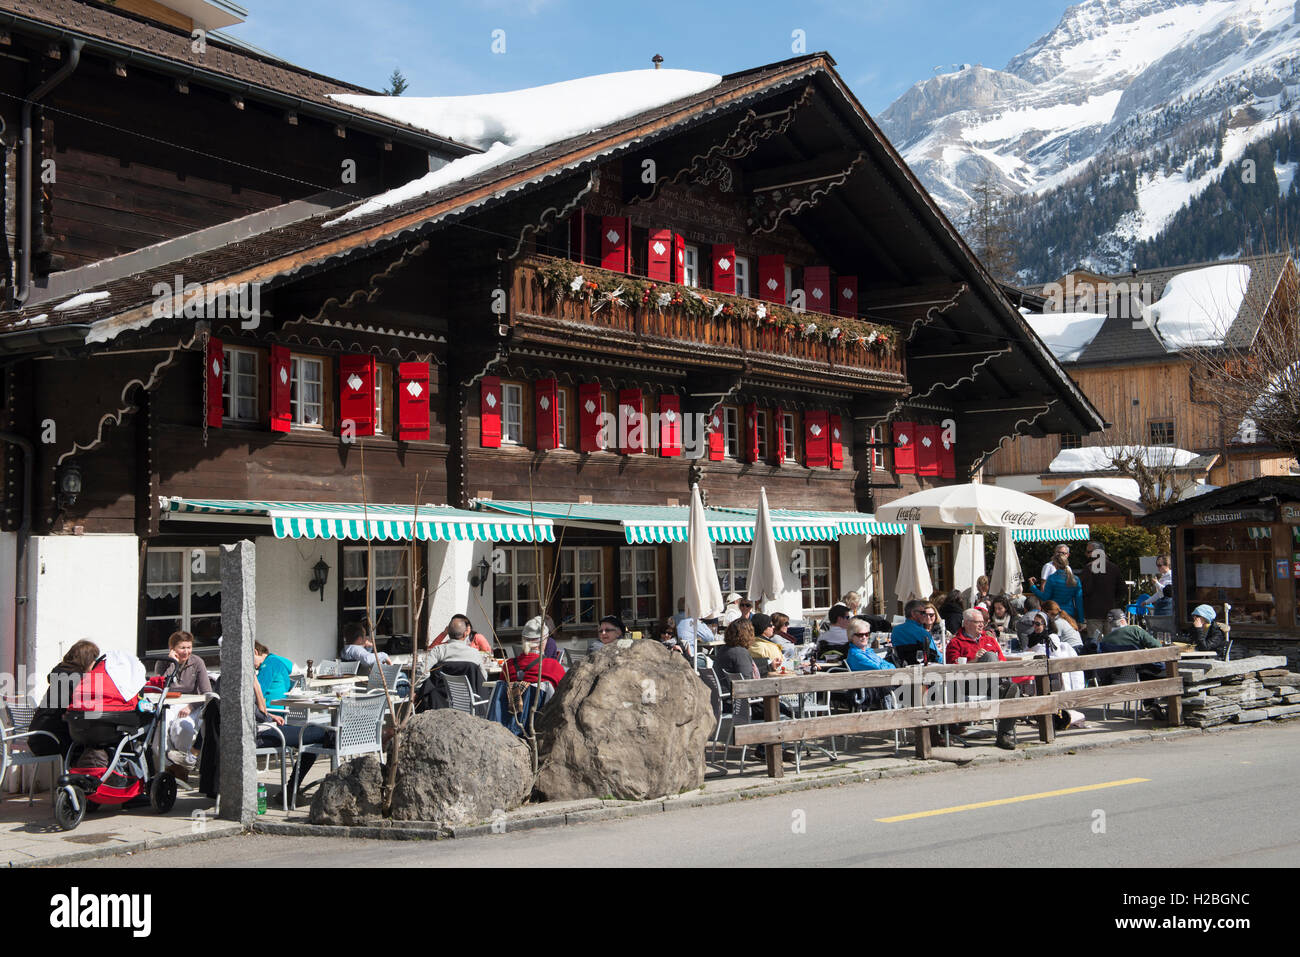 A traditional tavern, guests sitting outside, Ormont Dessous, Vaud, Switzerland - Stock Image